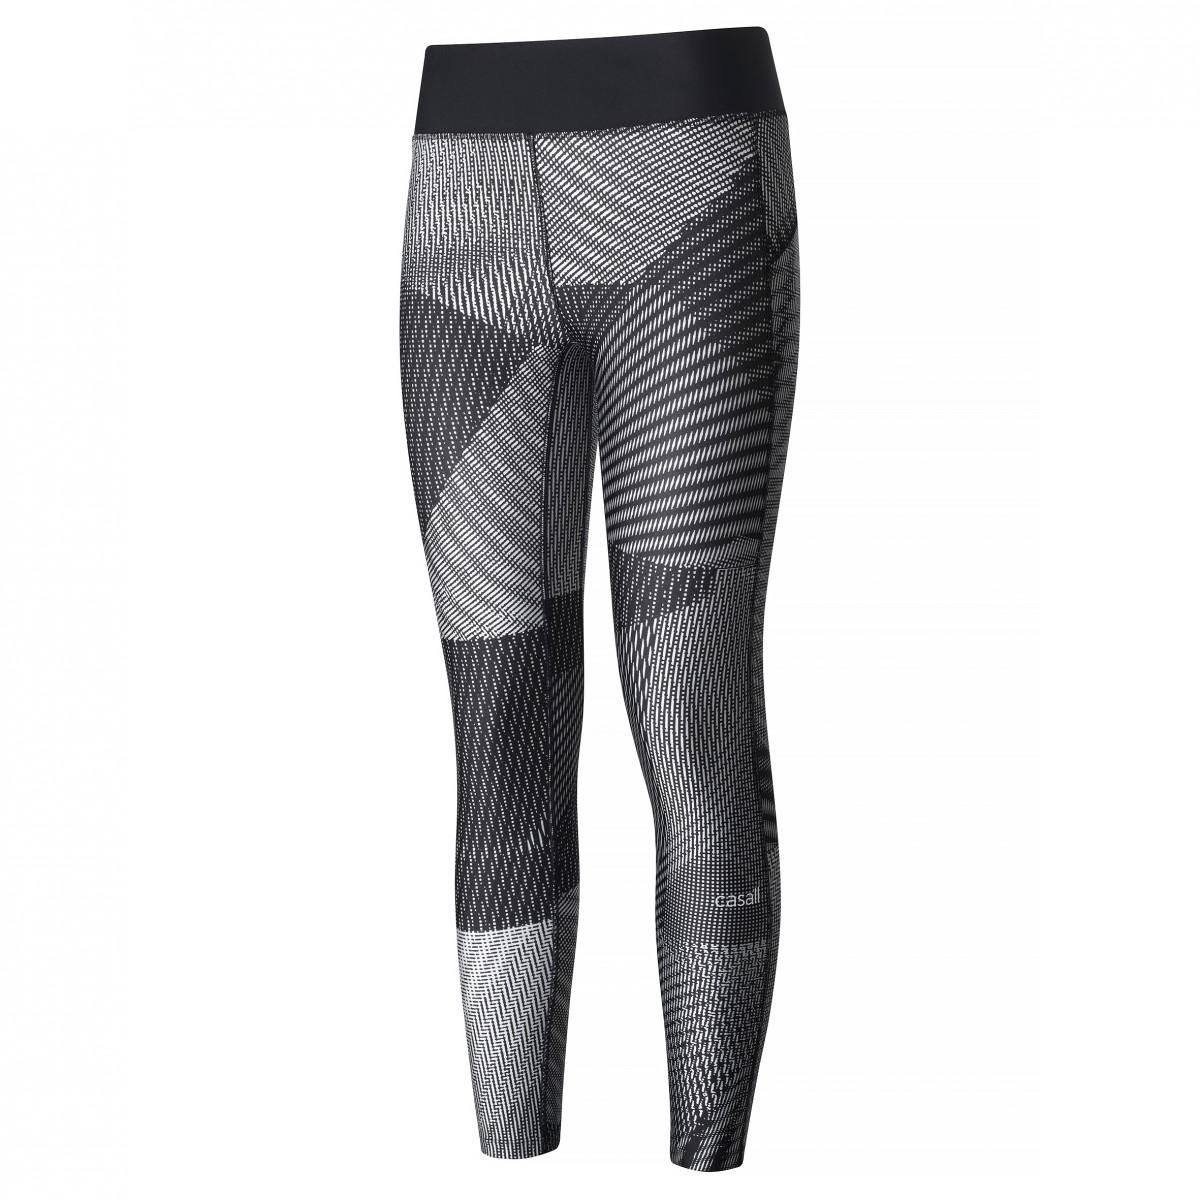 Casall Shifting 7/8 Tights